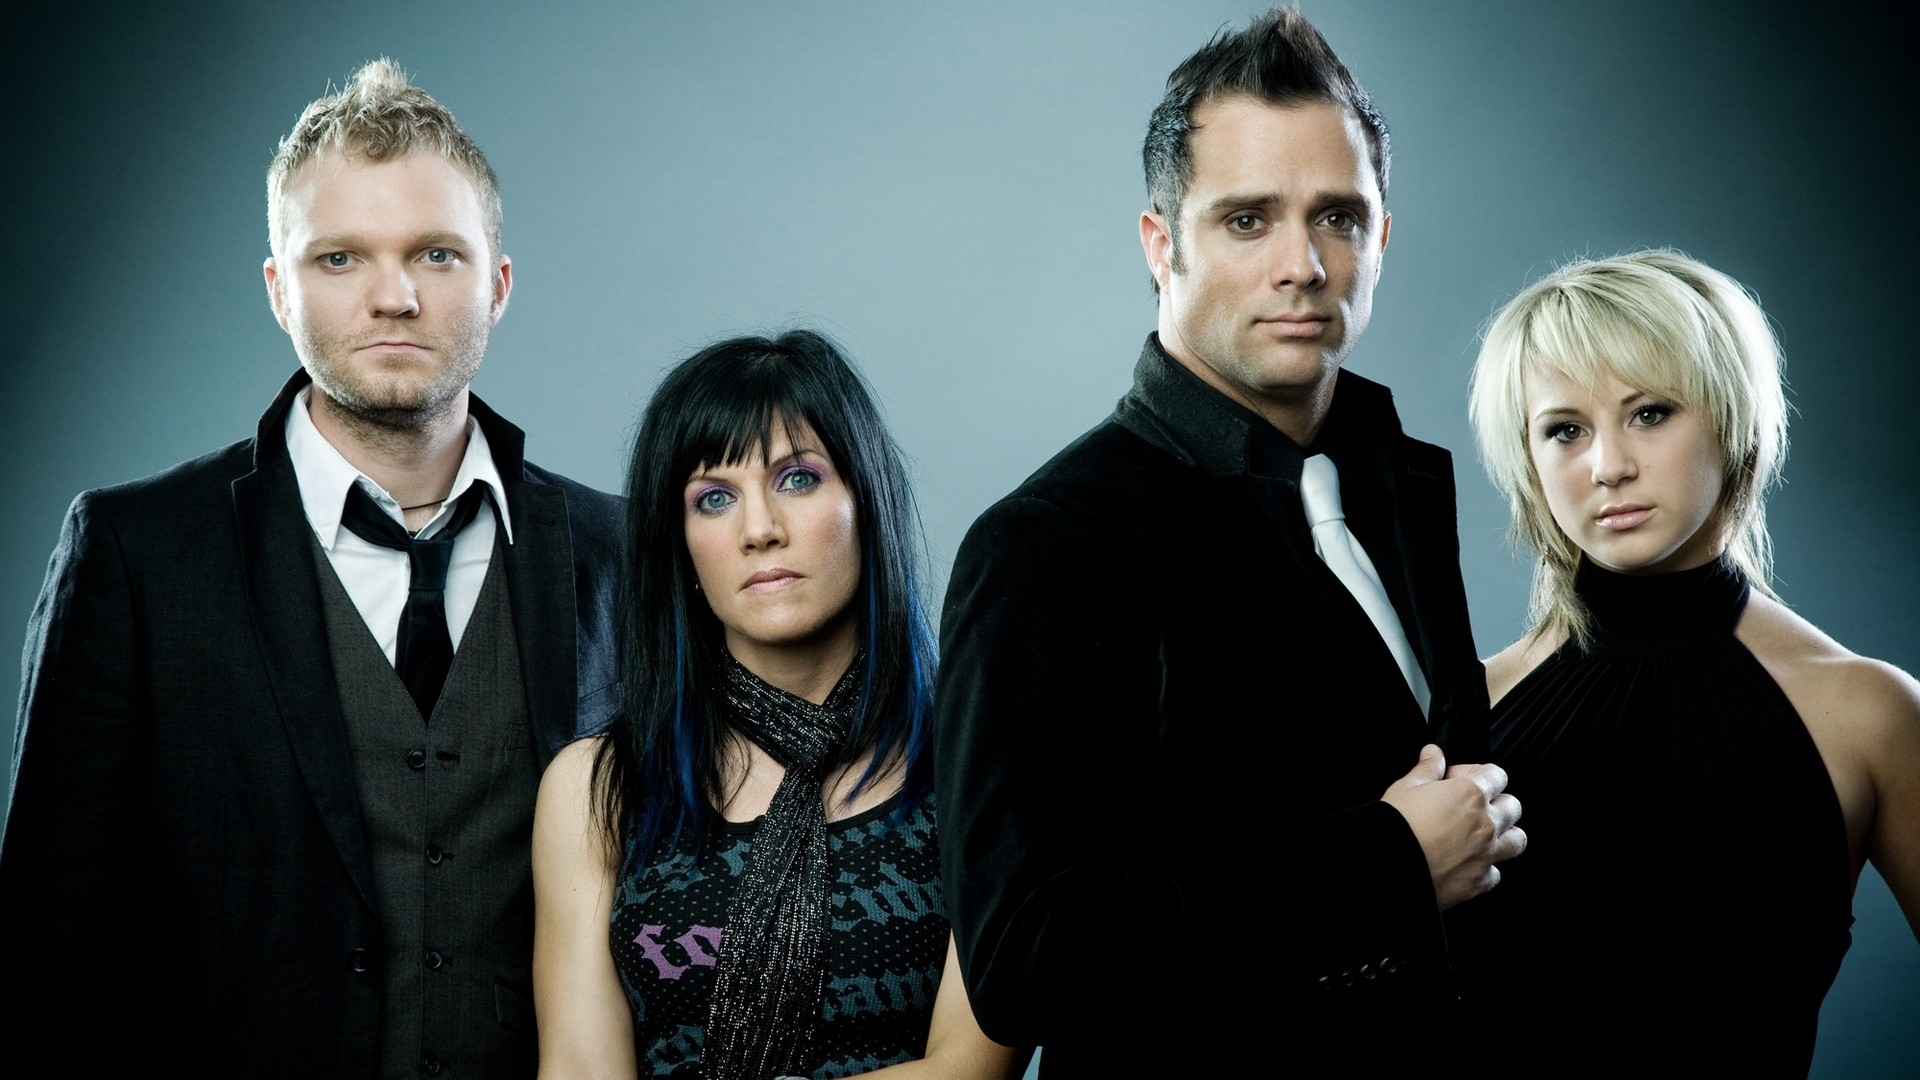 1920x1080 Preview Wallpaper Skillet Band Members Background Look